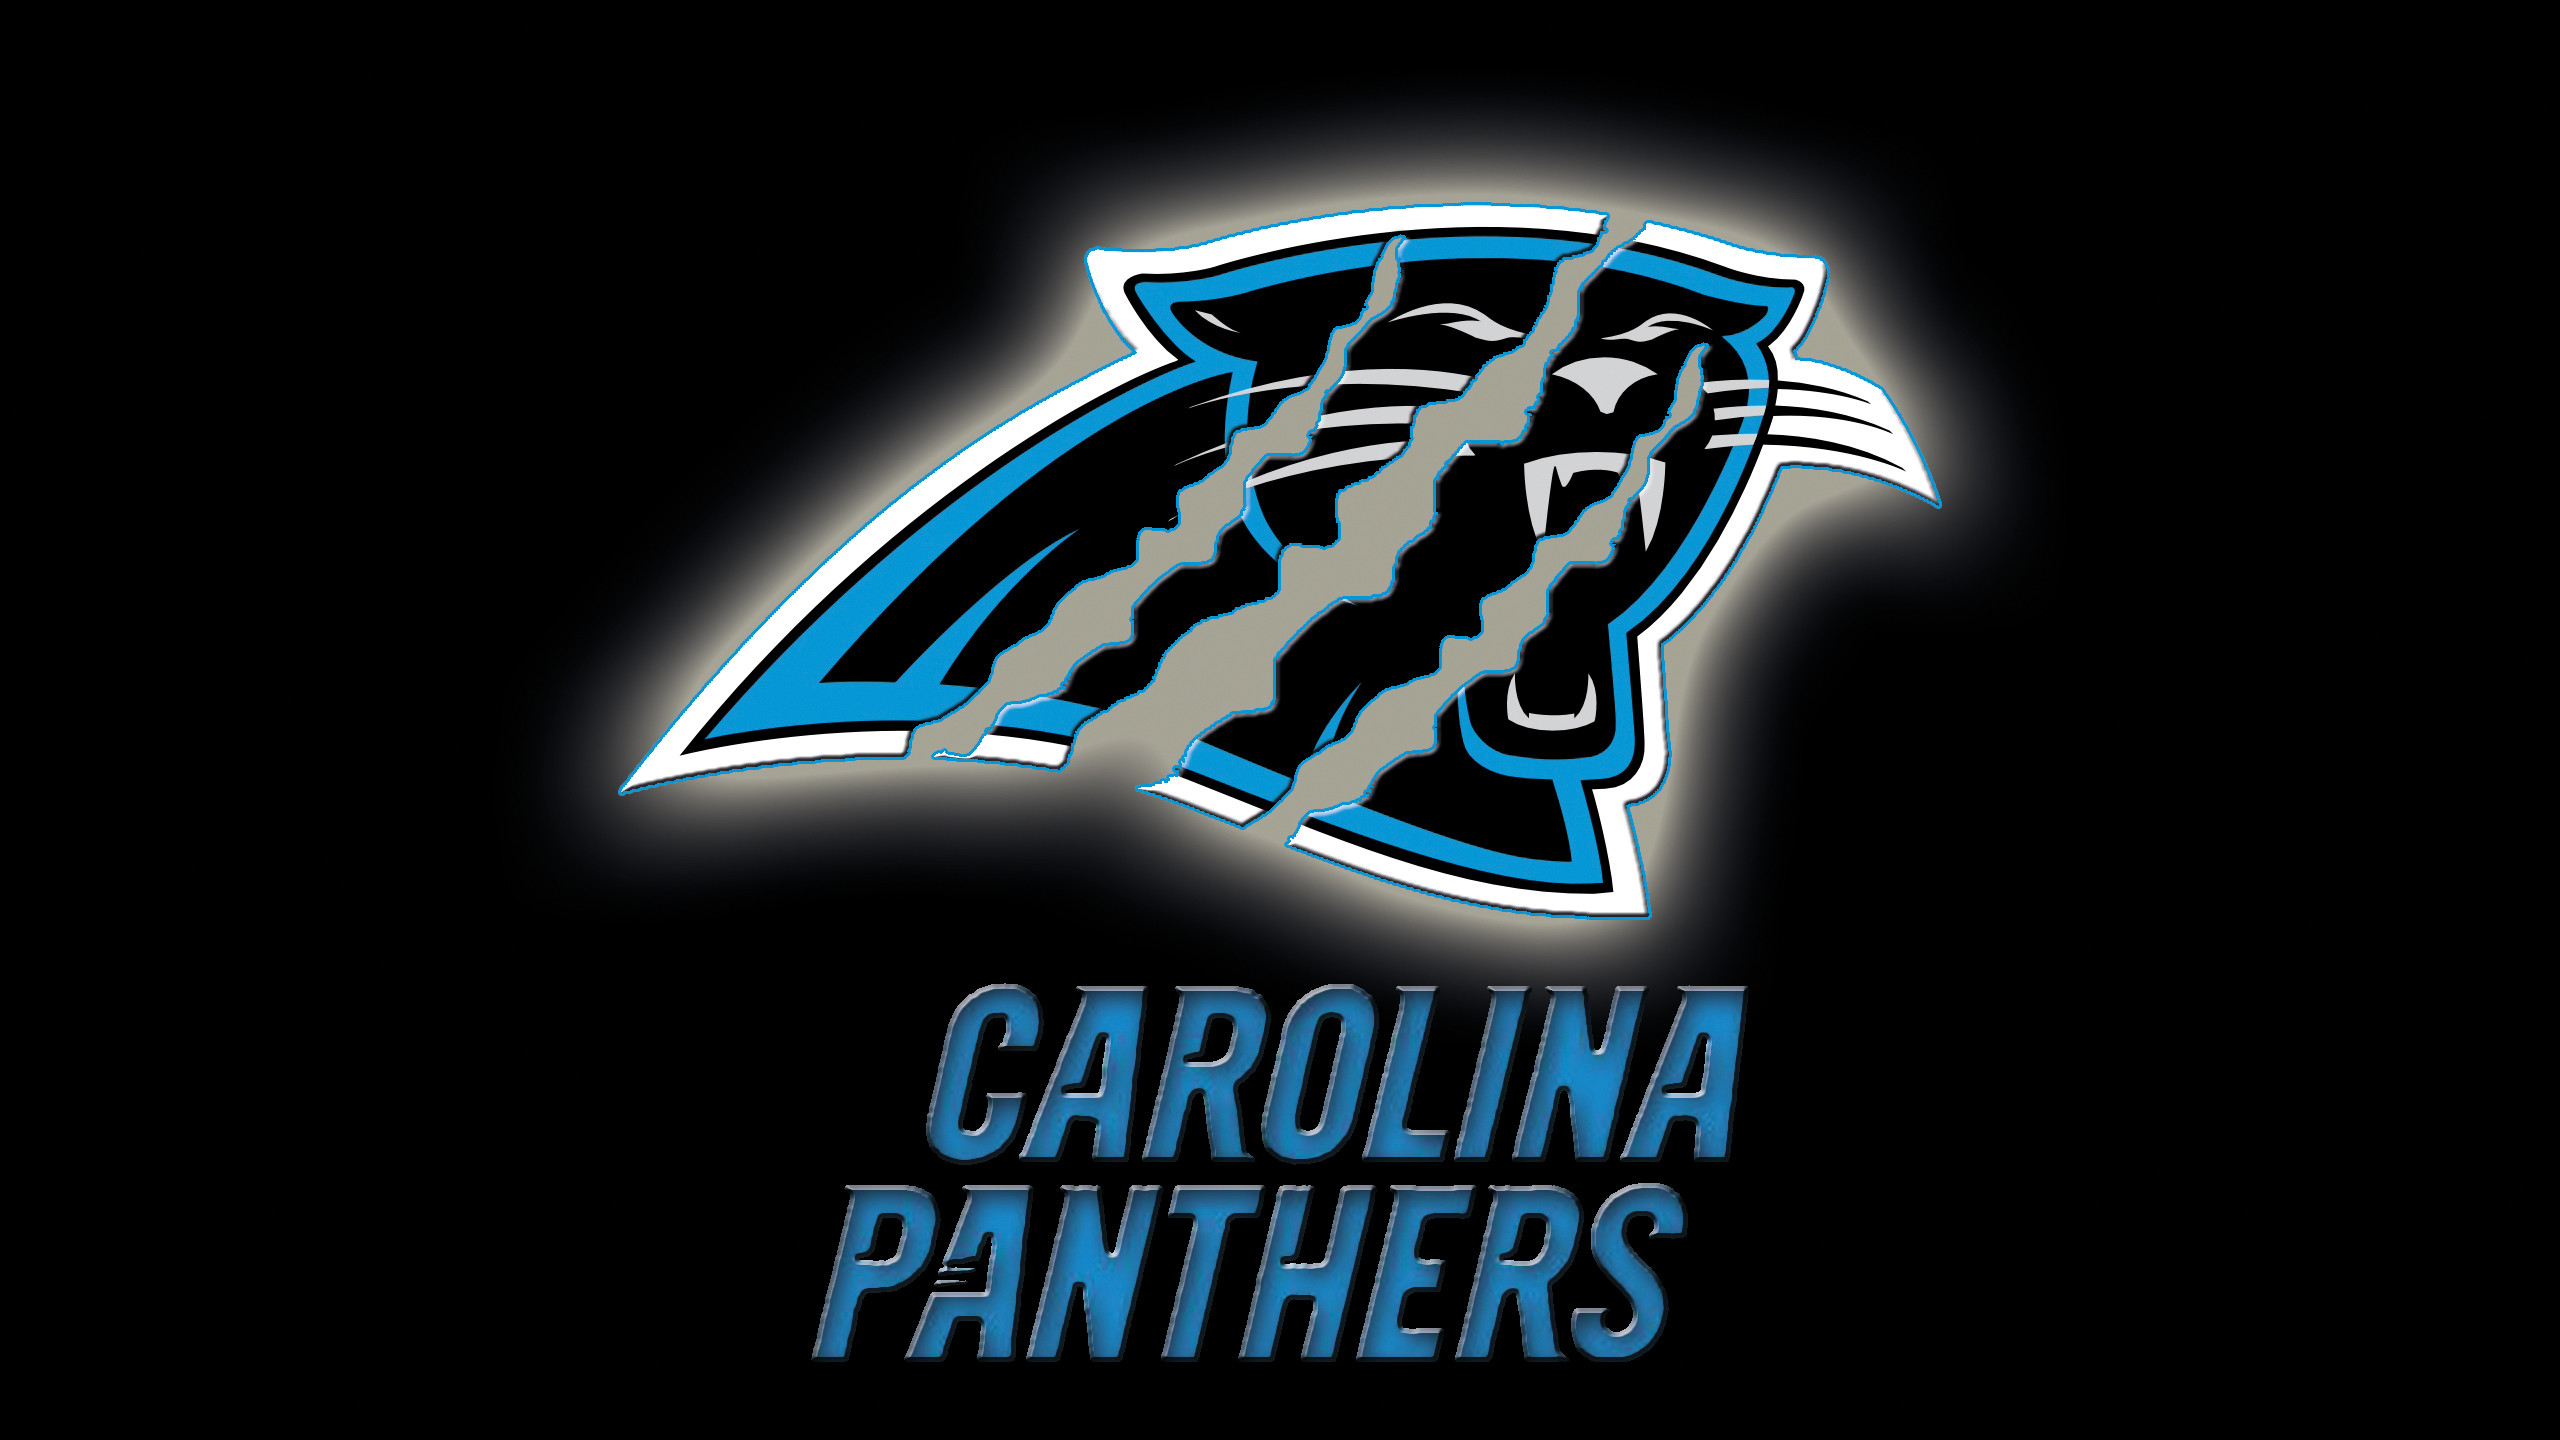 2560x1440 carolina panthers hd wallpapers Excellent Carolina Panthers Wallpaper Full  HD Pictures